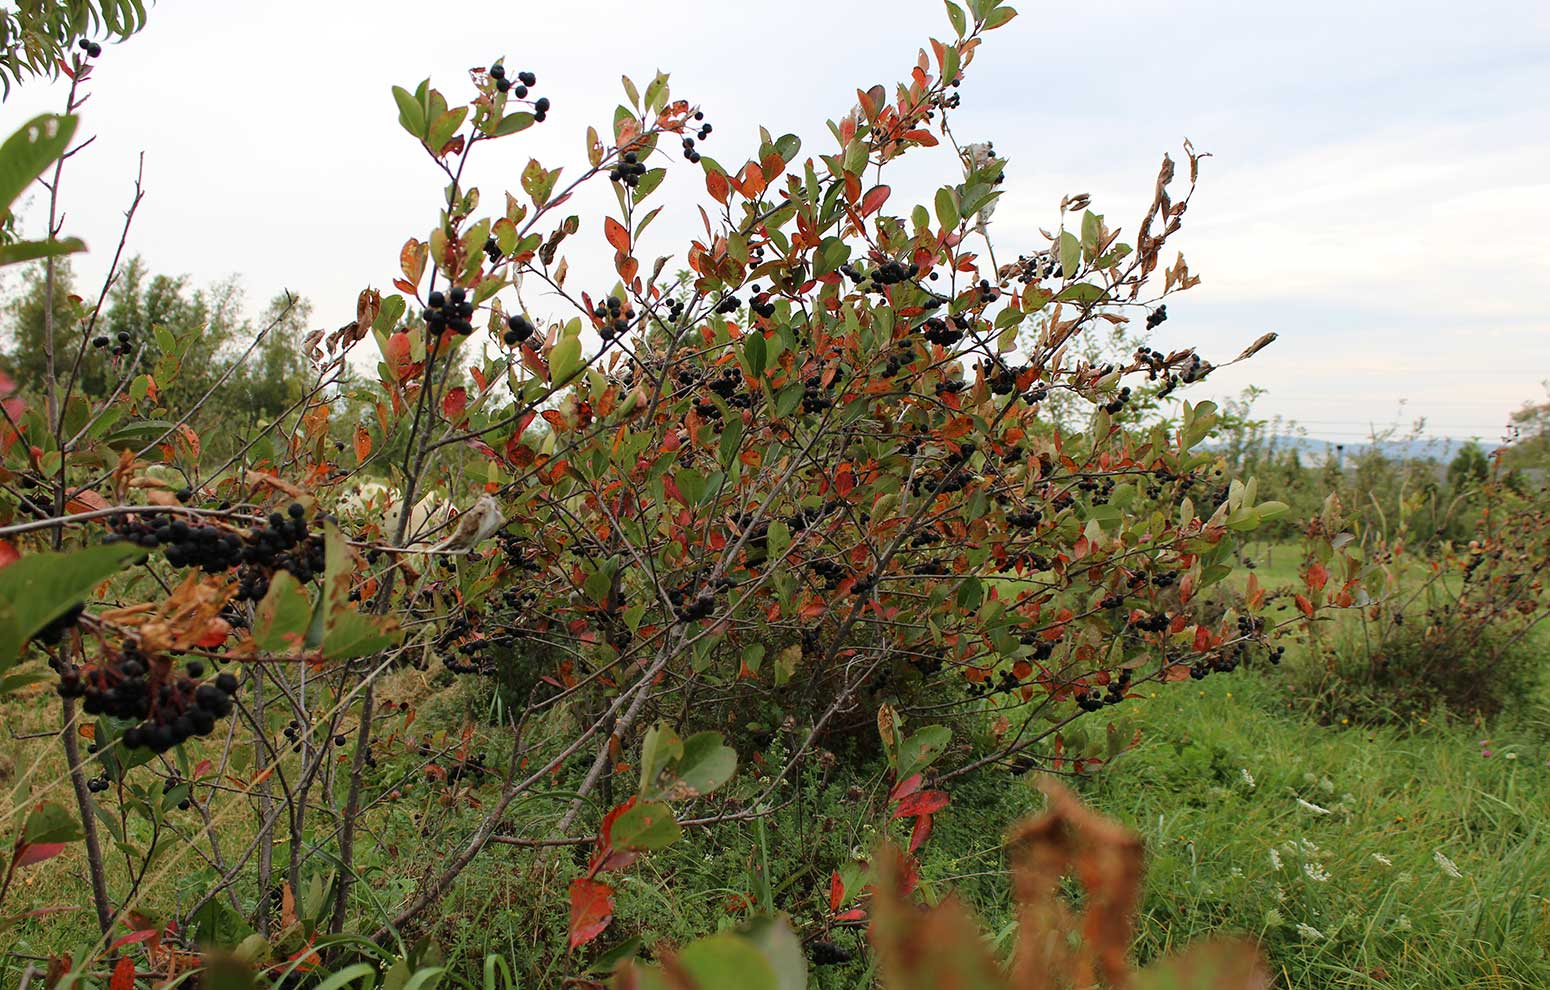 Orange and red fall foliage on aronia bushes in autumn